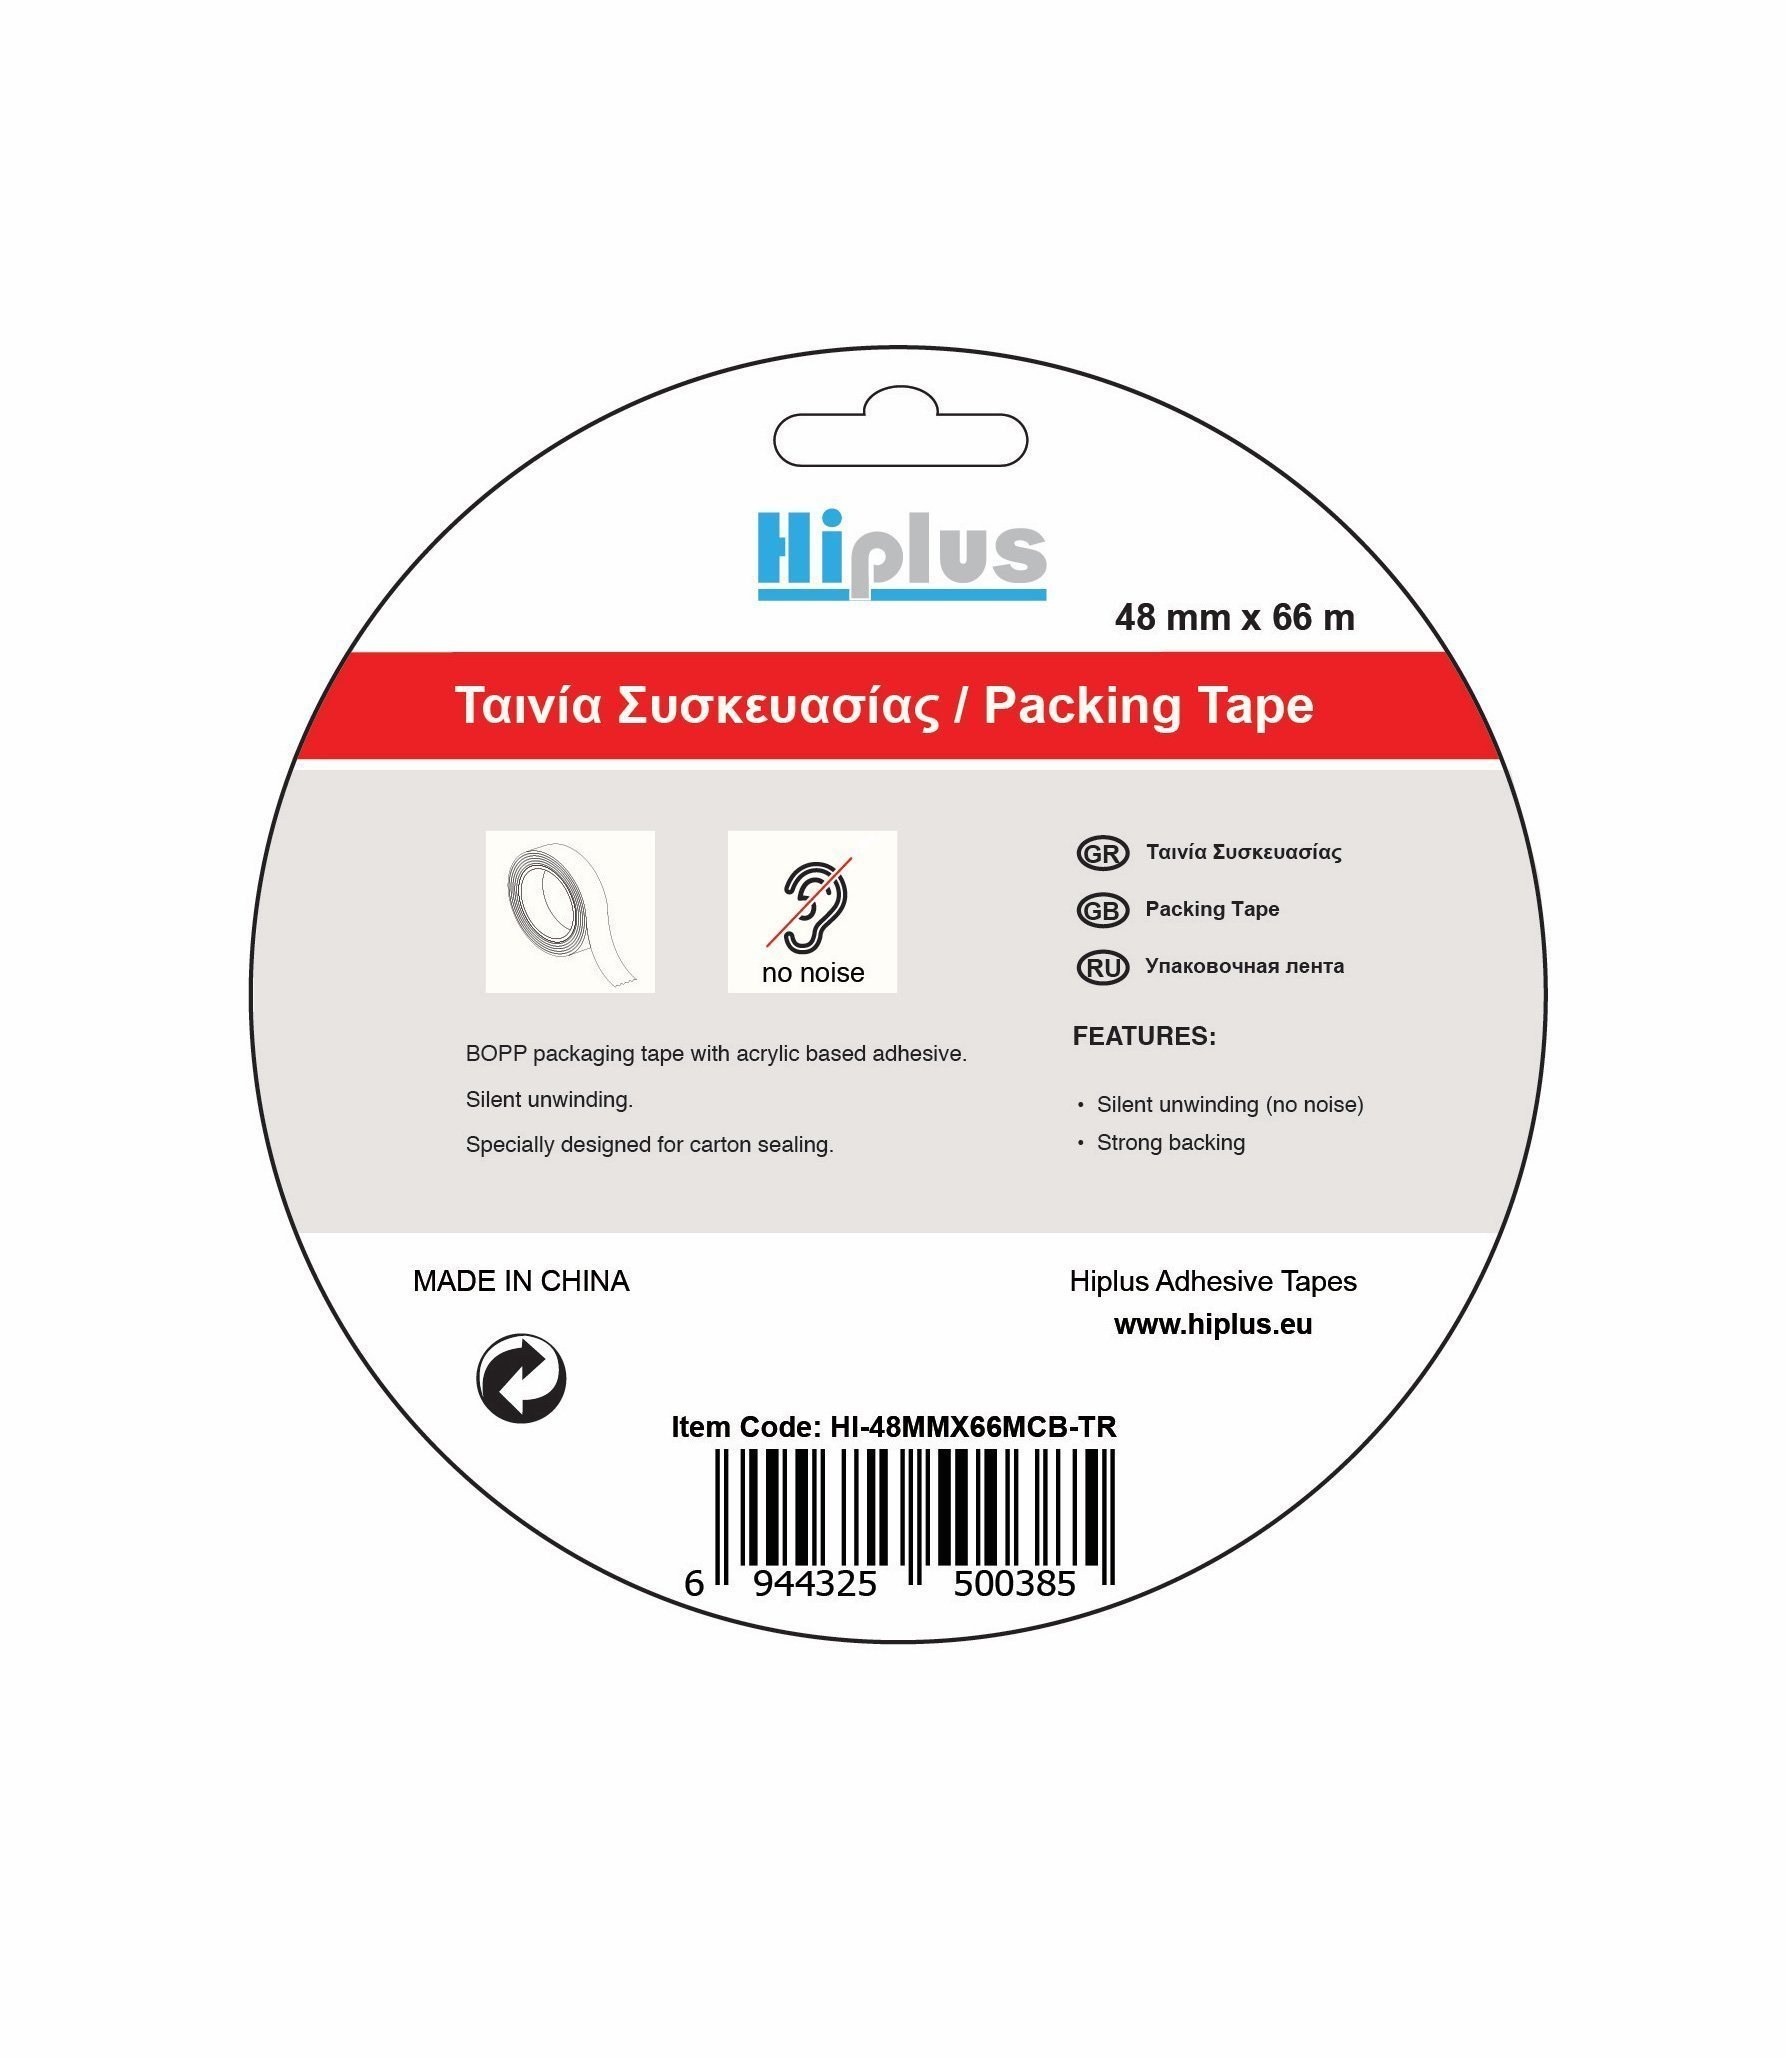 HIPLUS OPP PACKING TAPE (Low-noise) 48MM X 66M TRANSPARENT